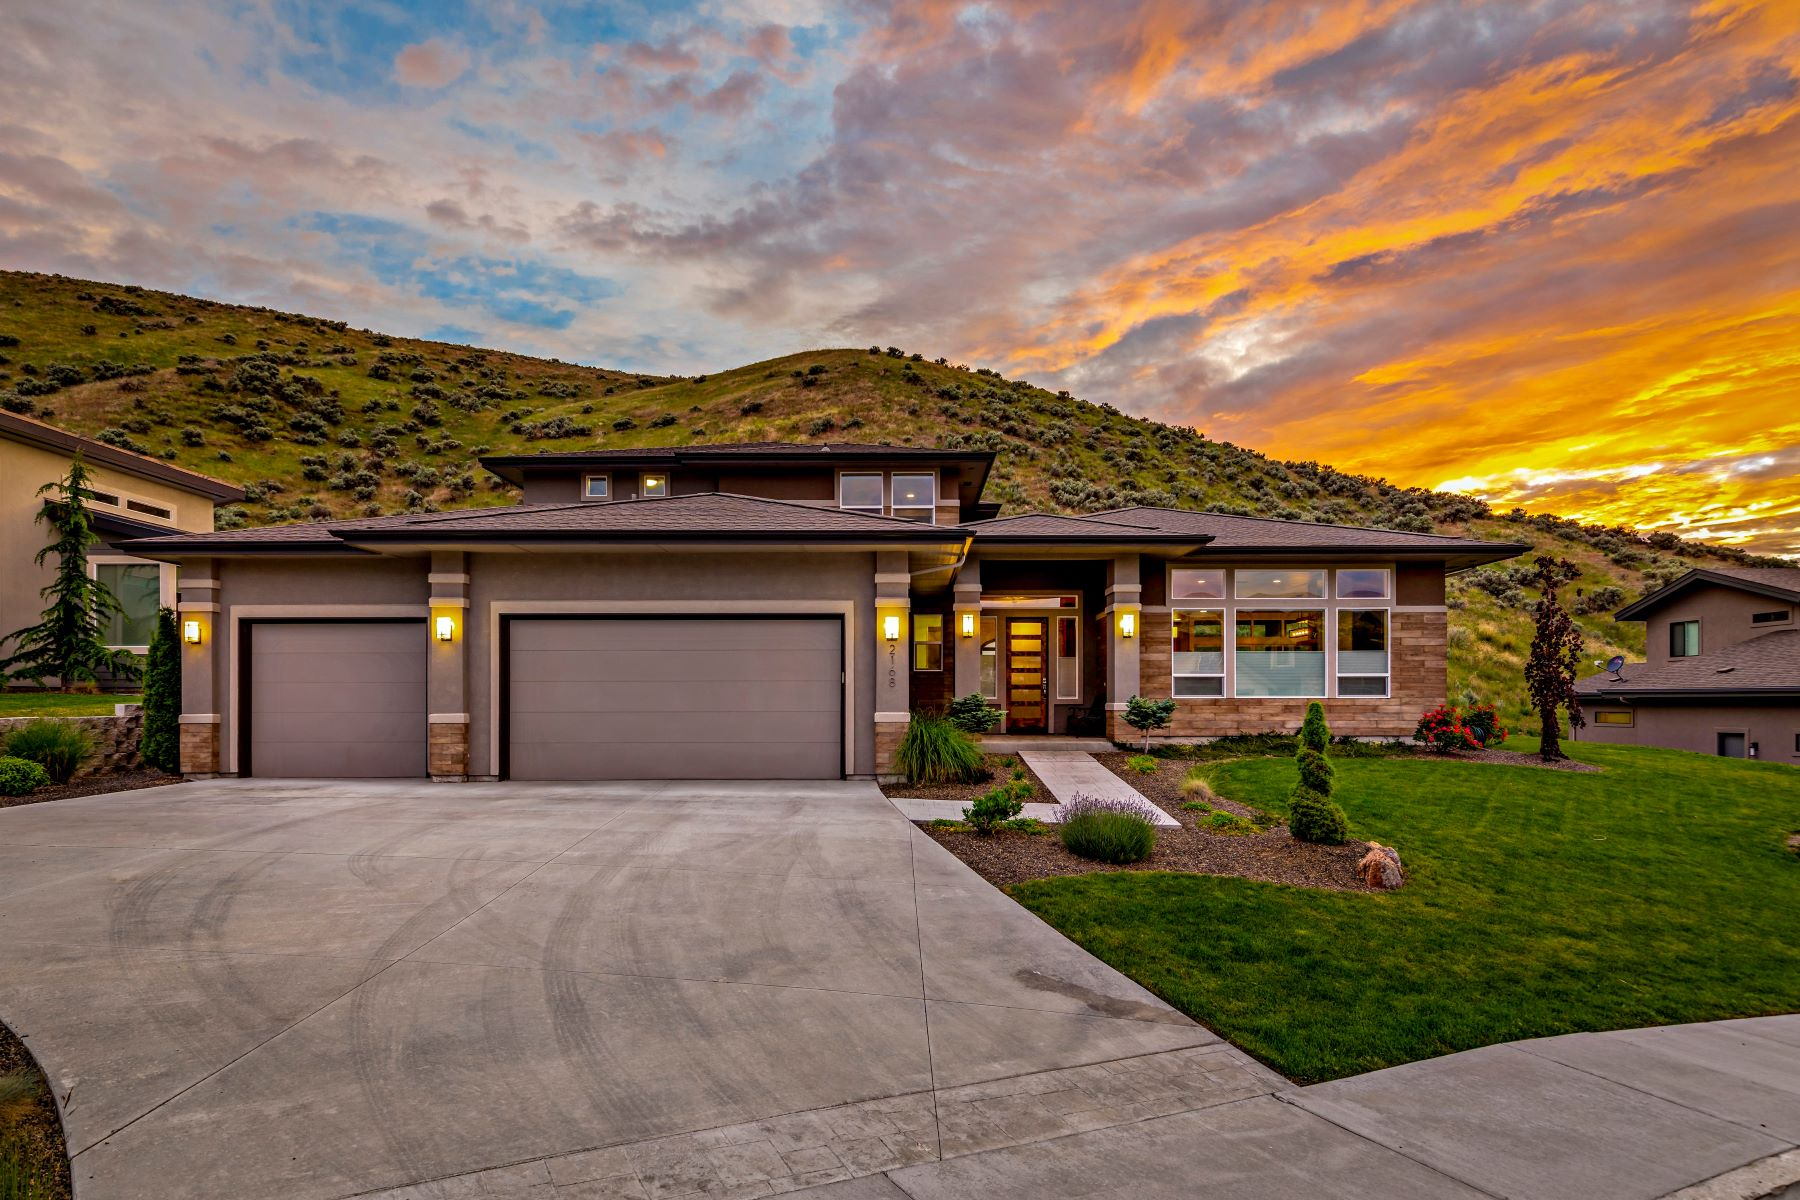 Single Family Homes for Active at 2168 Bent Bow Ct Boise, Idaho 83703 United States